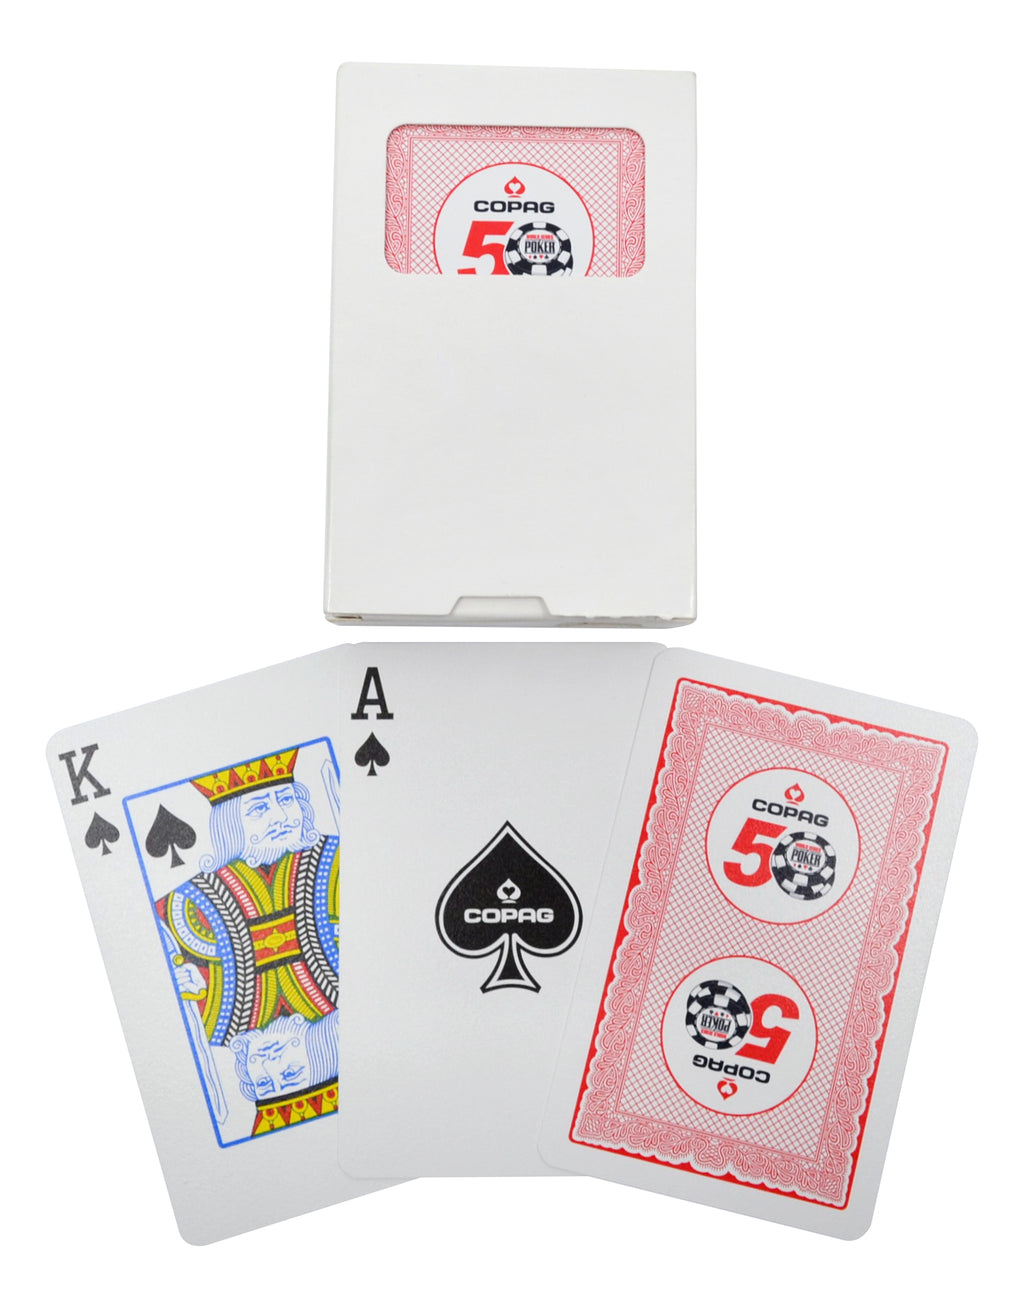 Copag 2019 WSOP Bridge Size Regular Index Playing Cards Red Single Deck